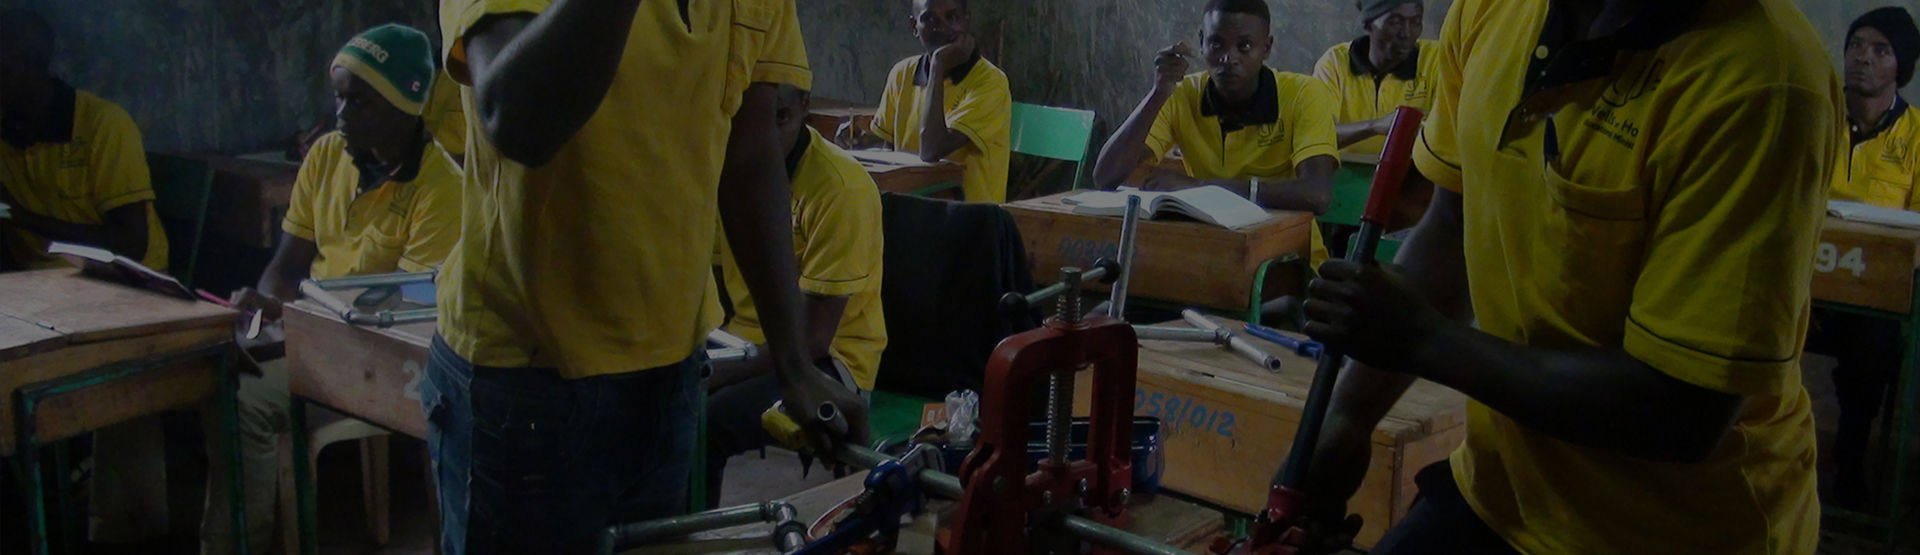 Providing Skills Training for Employment